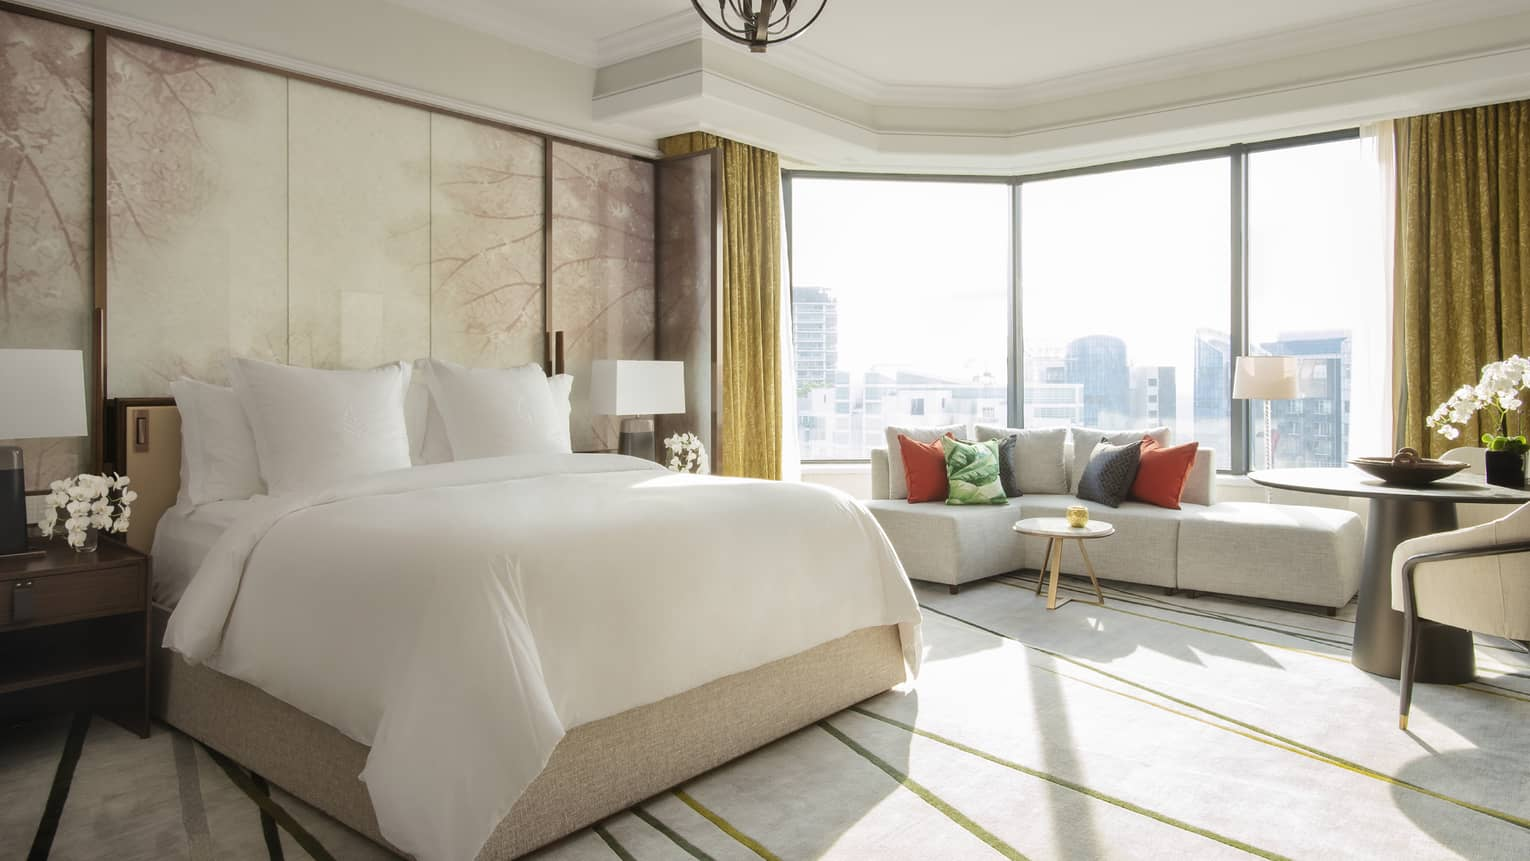 Royal Suite bedroom with floor-to-ceiling windows with a view of the city